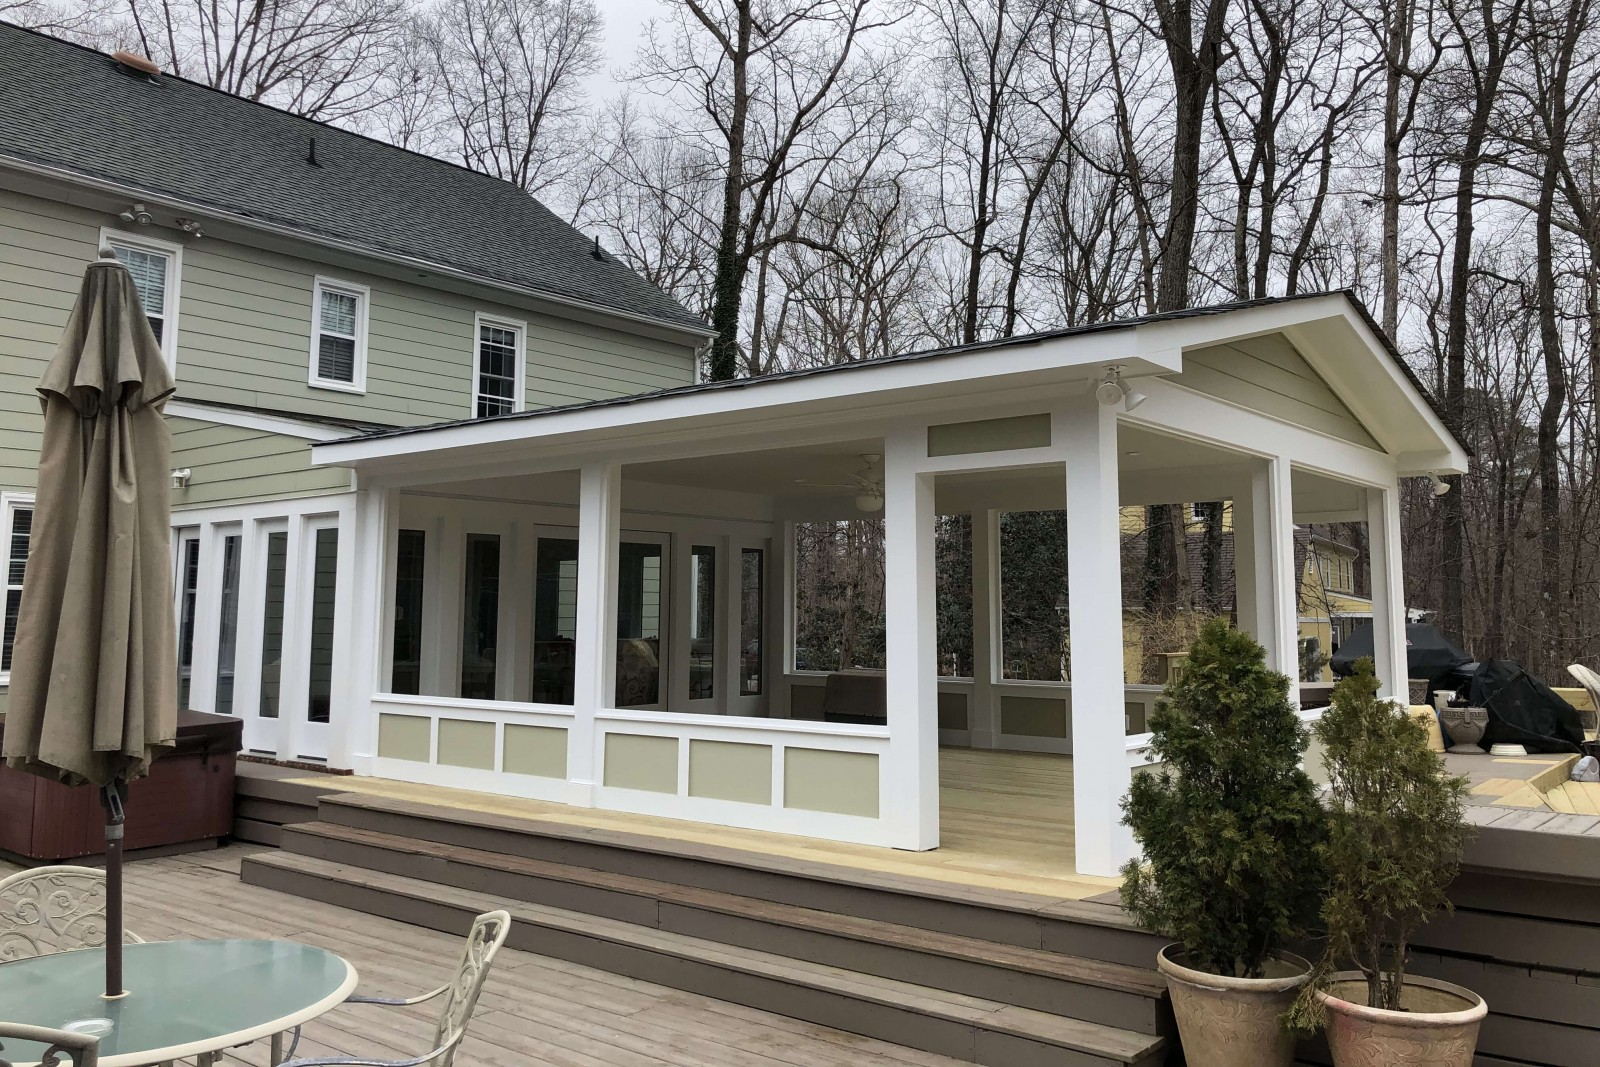 Covered porch and outdoor deck